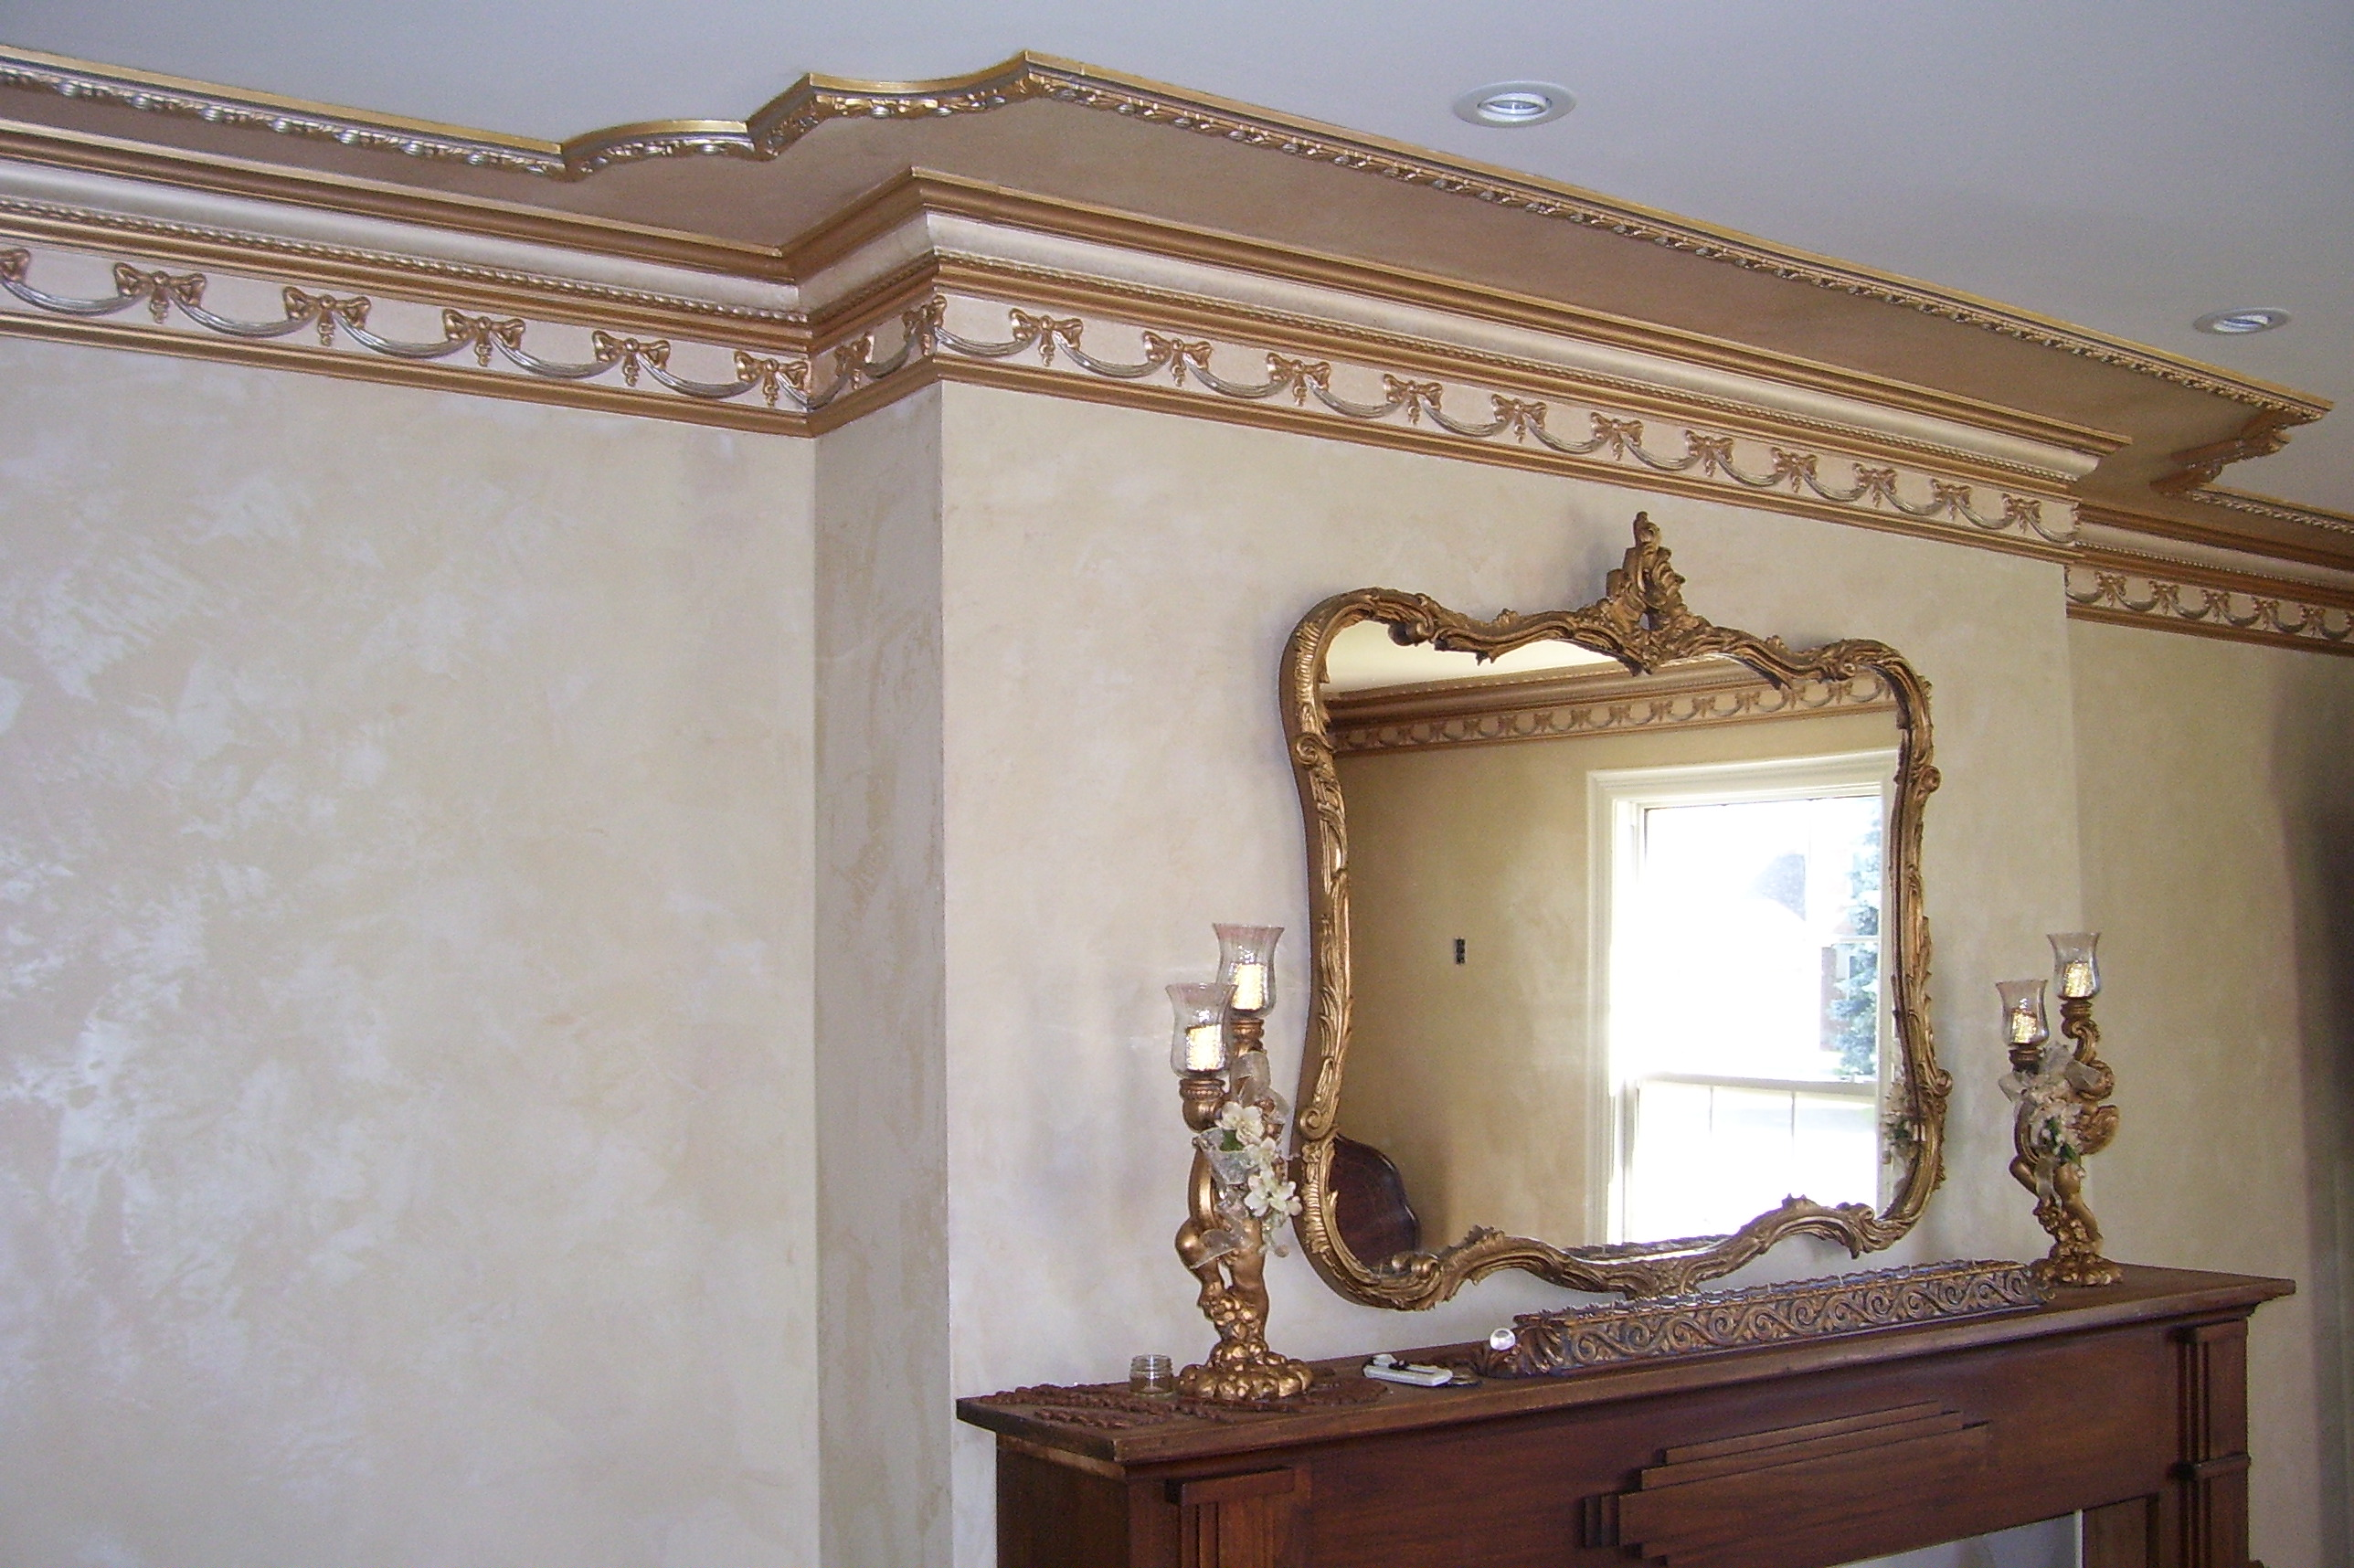 Murals By Marg Gold Hand Painted Parlour molding 1.jpg